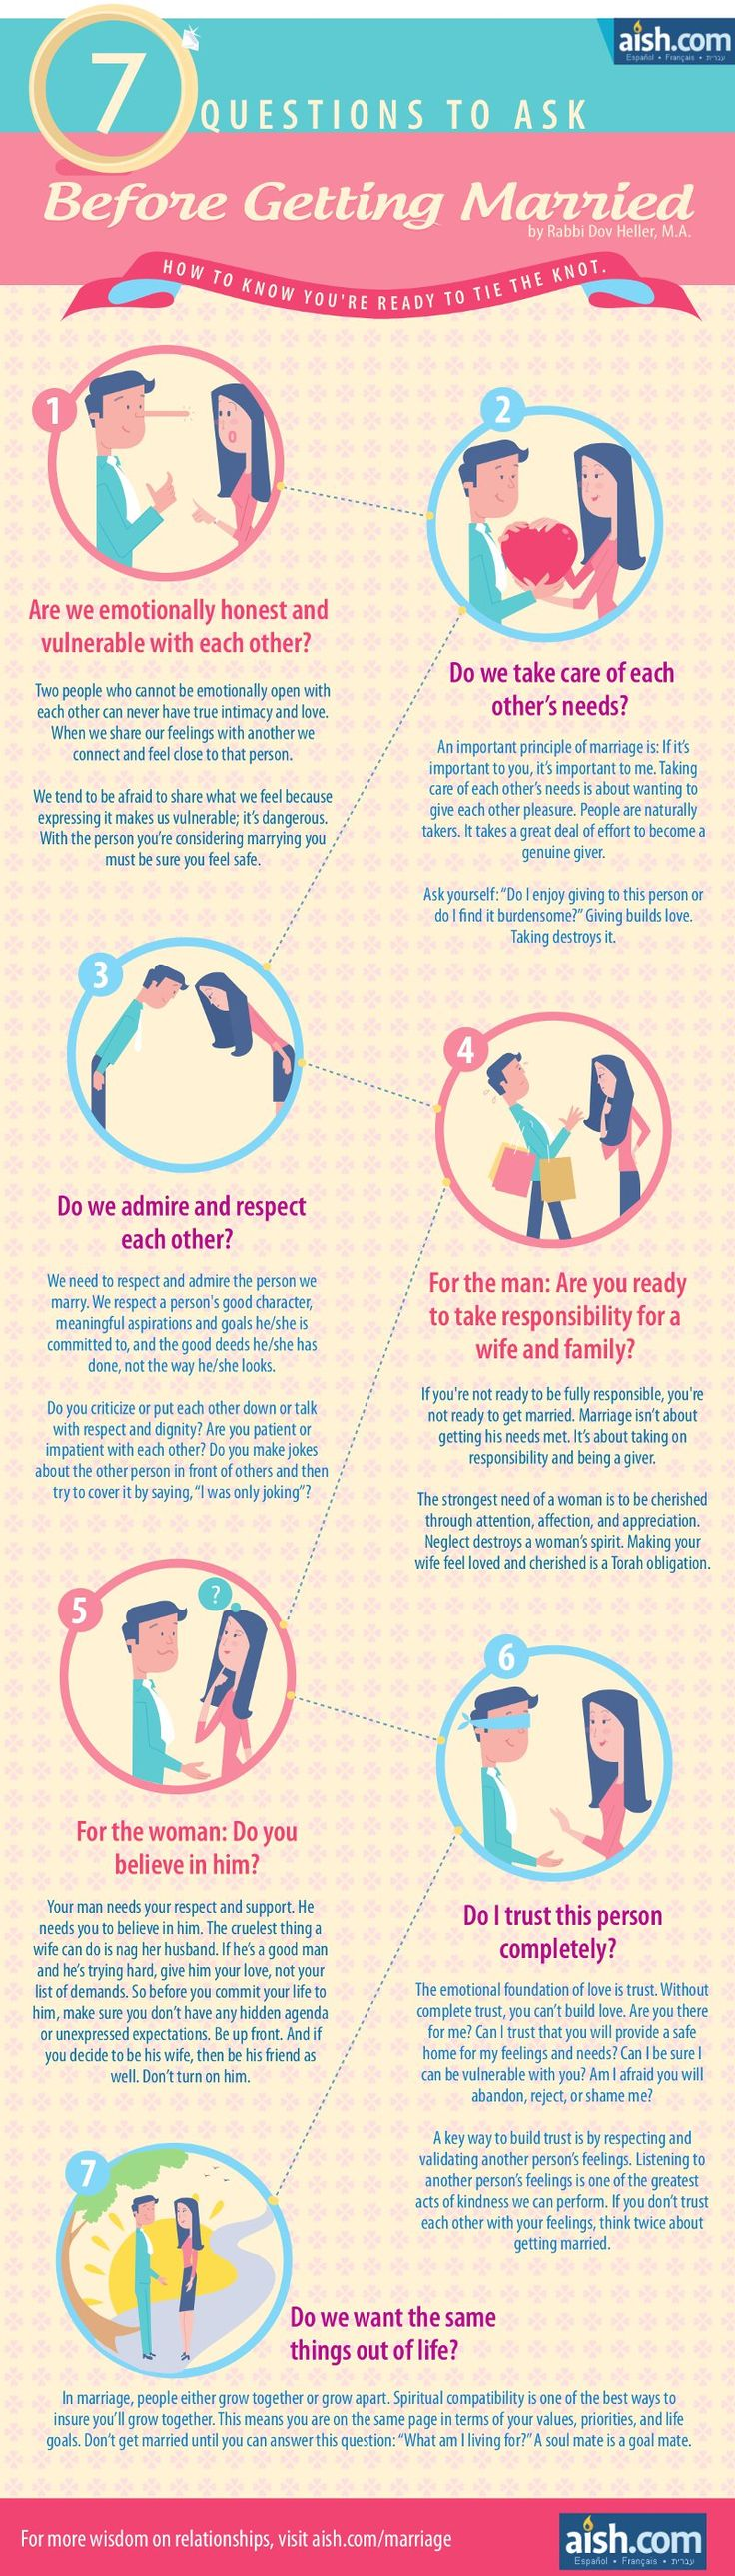 7 Questions to ask before getting married. To see more great Jewish wisdom on dating, visit Aish.com's dating page: http://www.aish.com/d/?s=nb